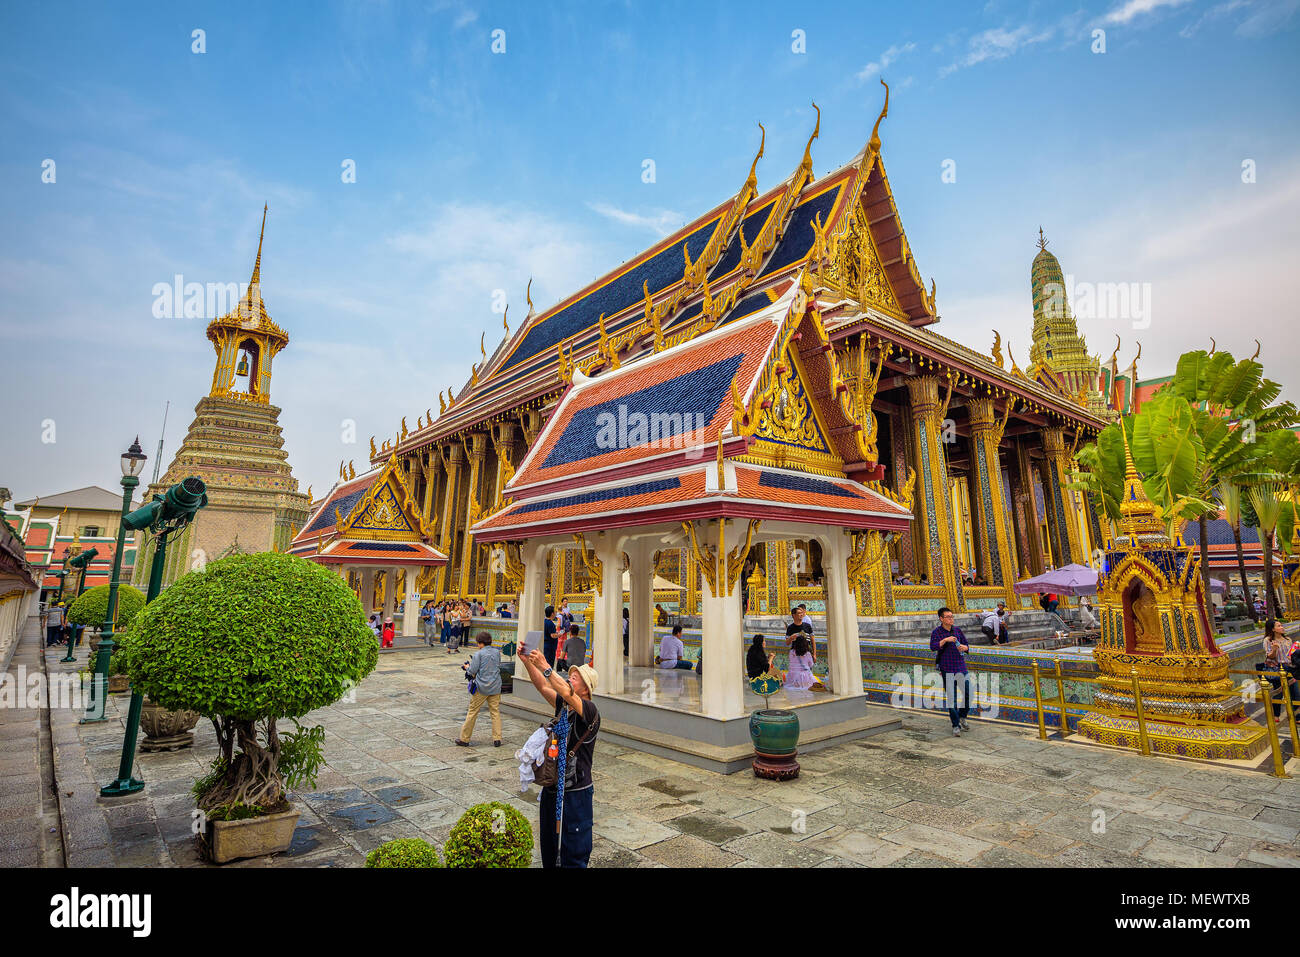 Grand palace in Bangkok, Thailand - Stock Image